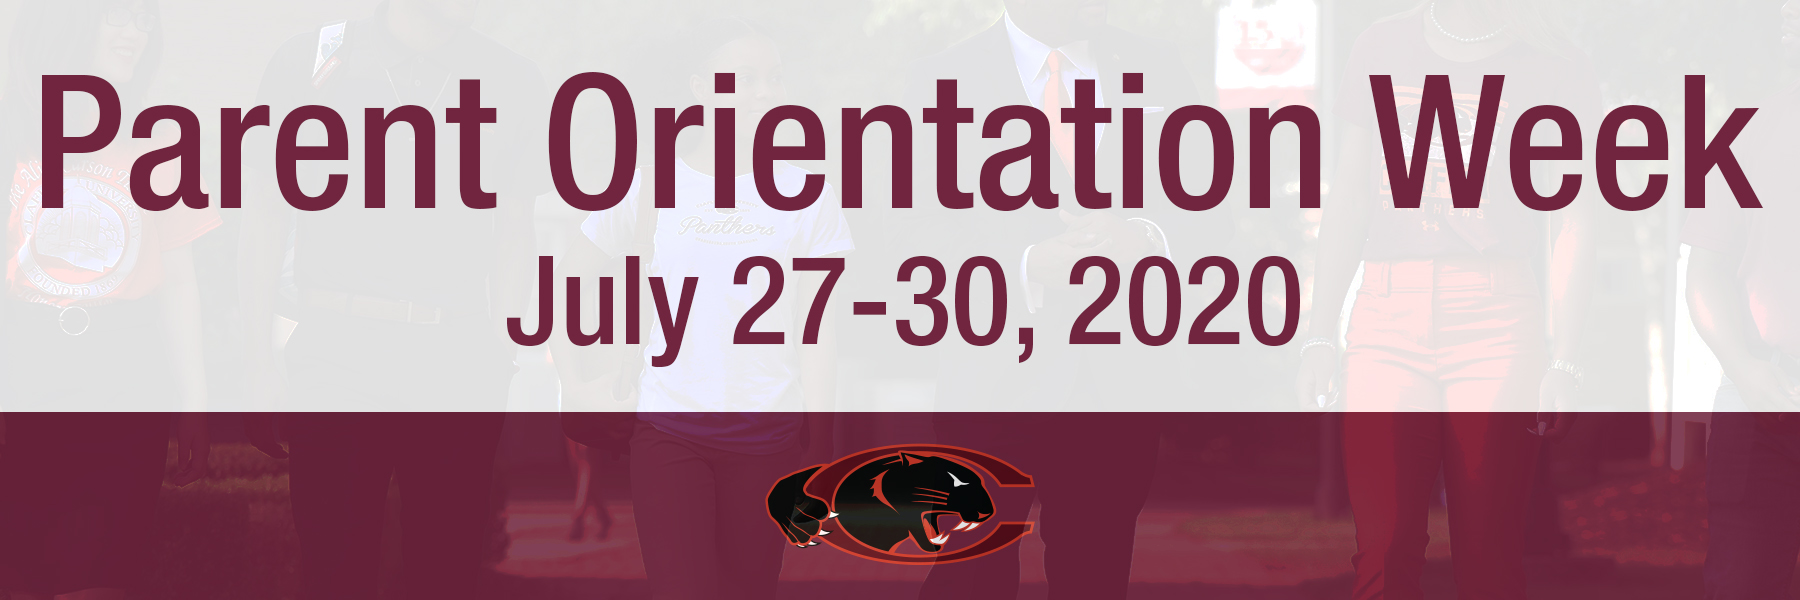 Parent Orientation Week